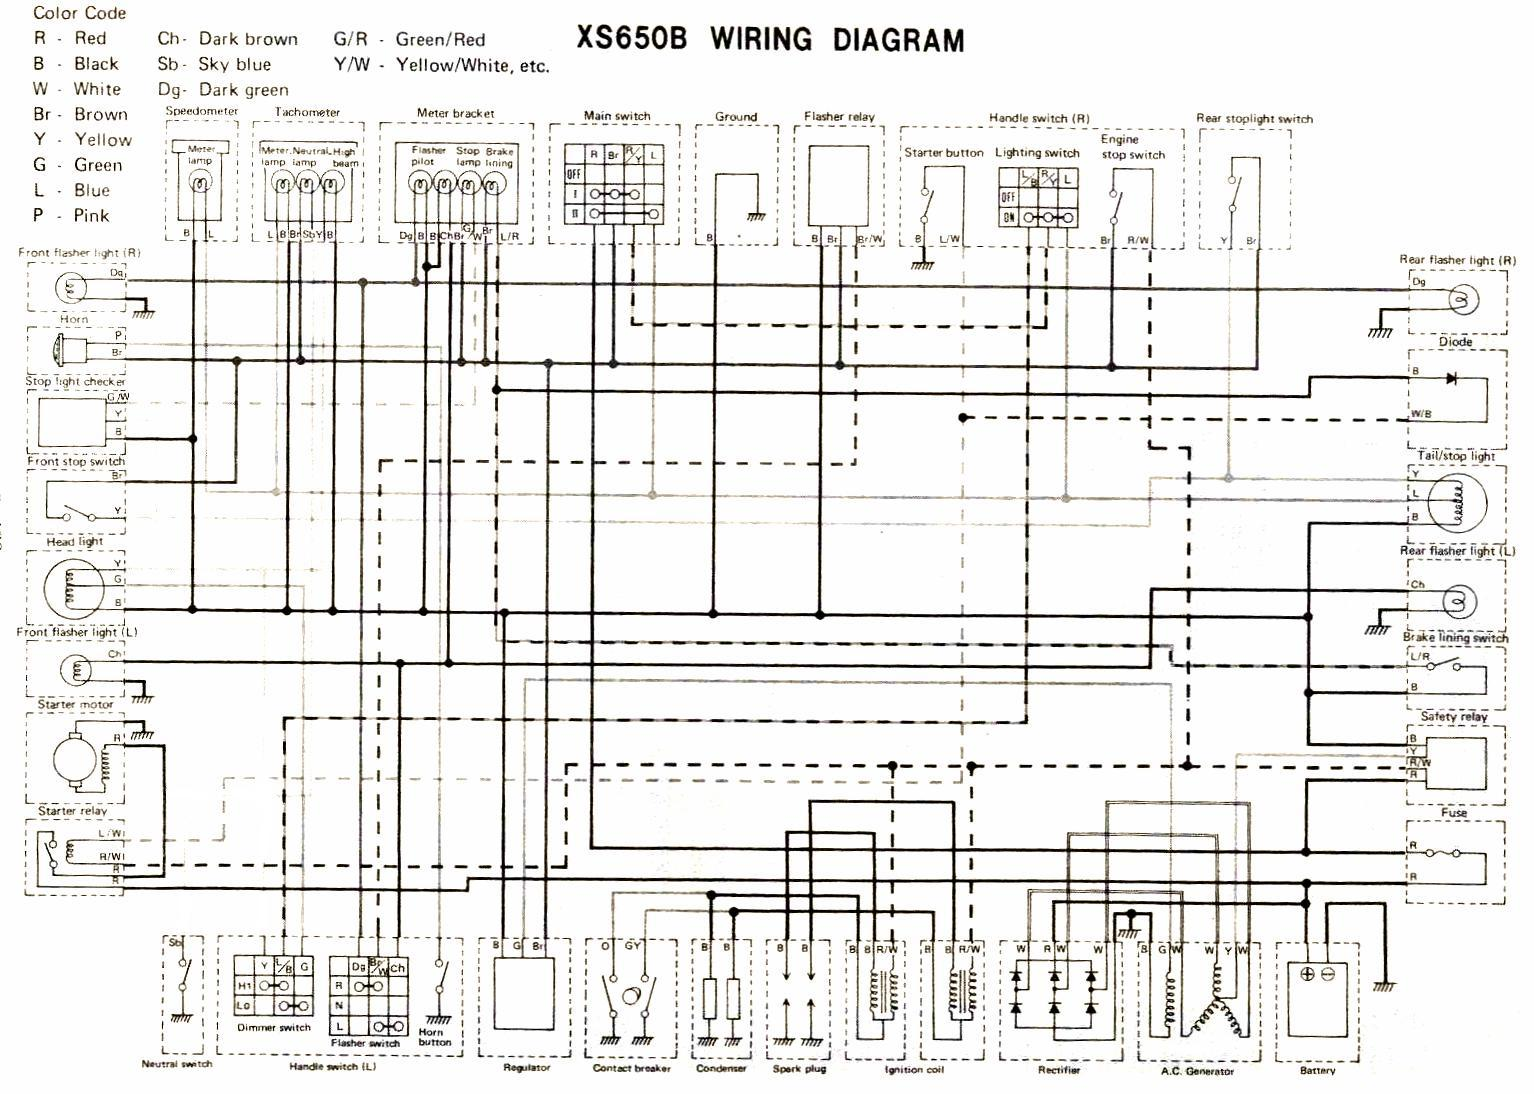 75XS650B wiring diagrams 1982 xs650 wiring diagram at eliteediting.co